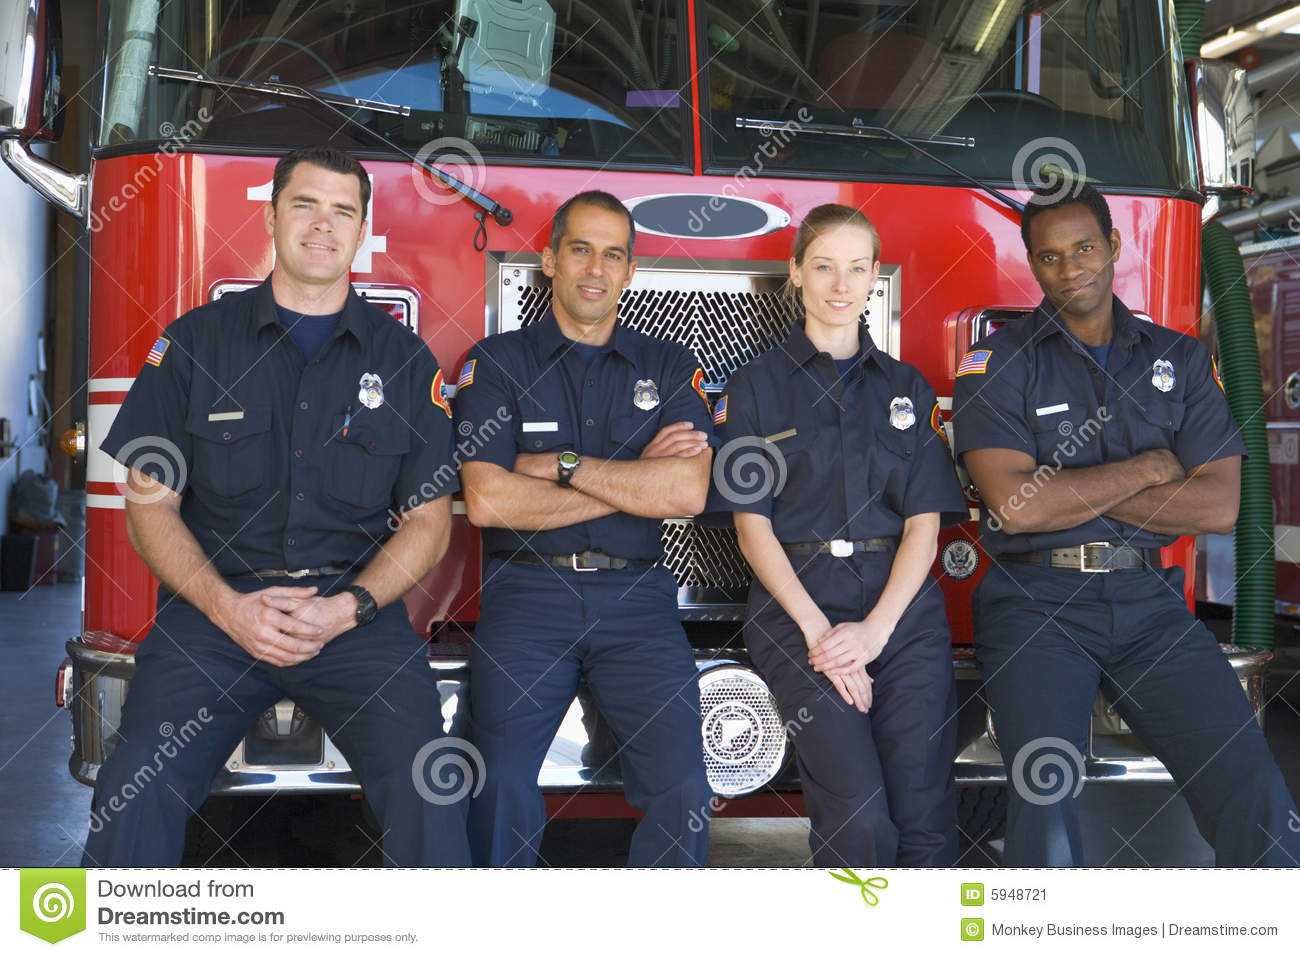 Engine fire firefighters portrait standing